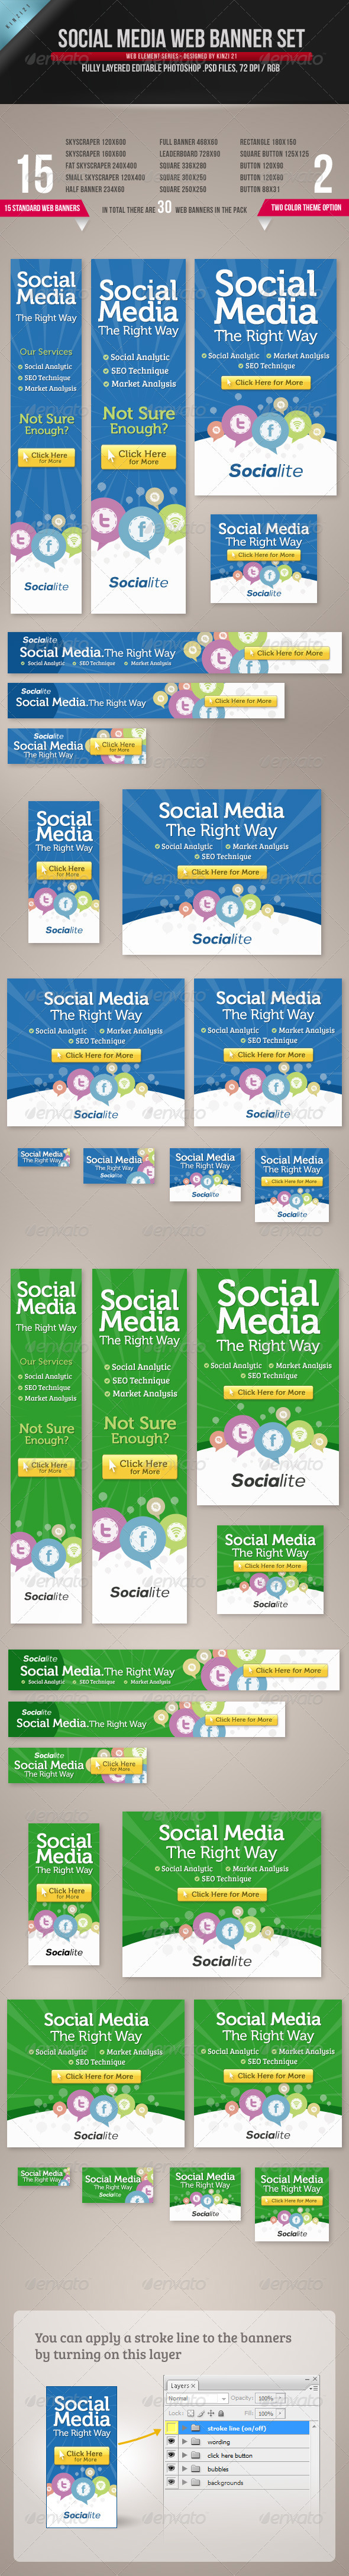 Social Media Web Banner Set - Banners & Ads Web Elements